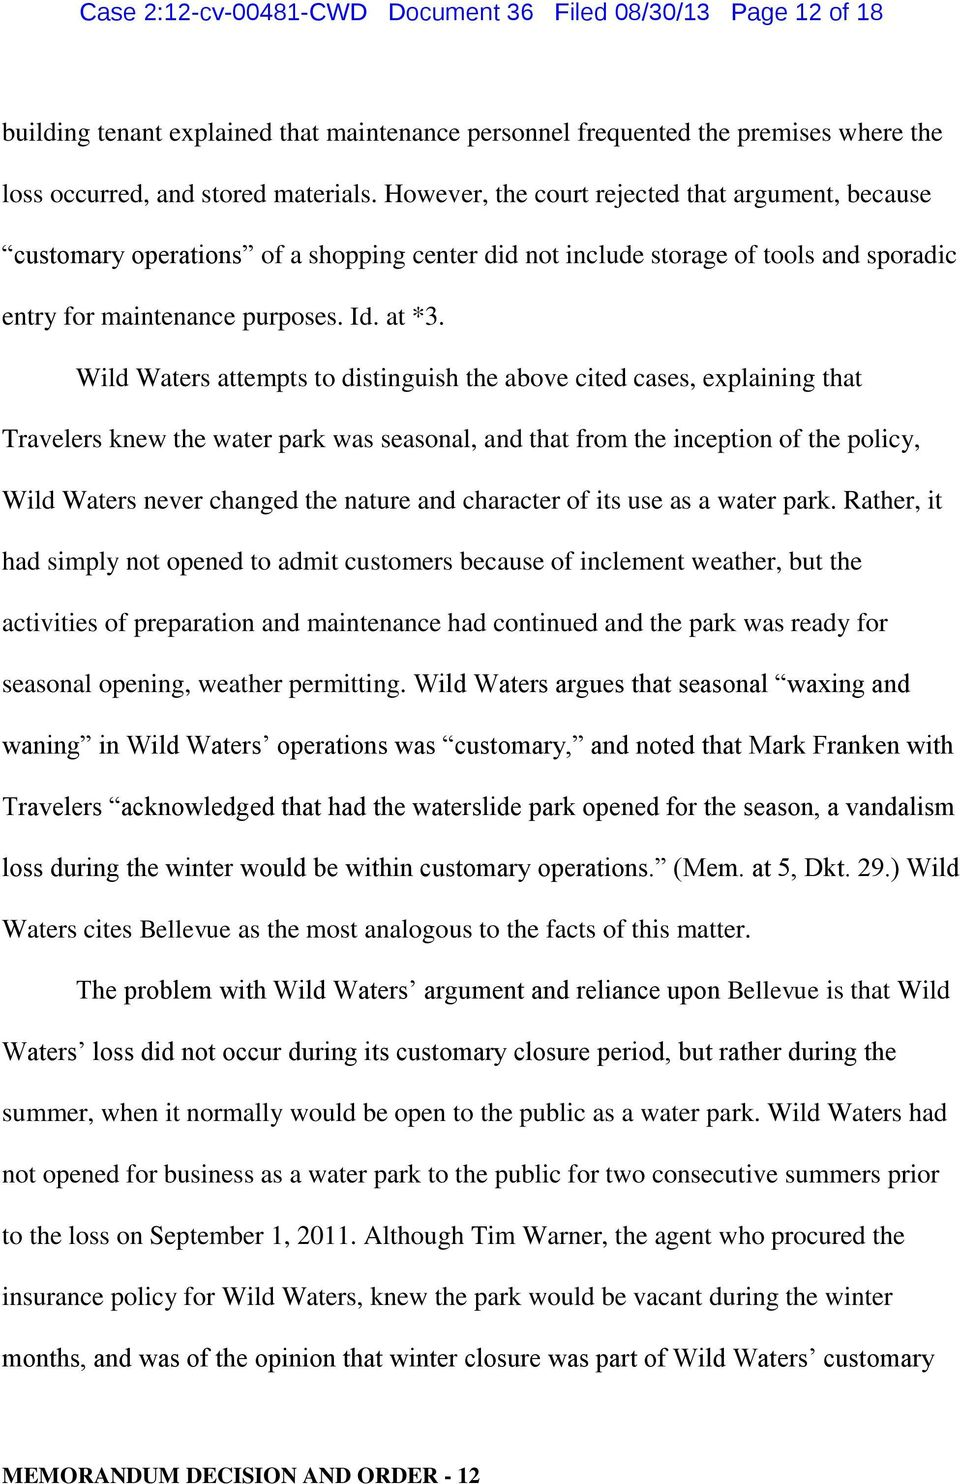 Wild Waters attempts to distinguish the above cited cases, explaining that Travelers knew the water park was seasonal, and that from the inception of the policy, Wild Waters never changed the nature